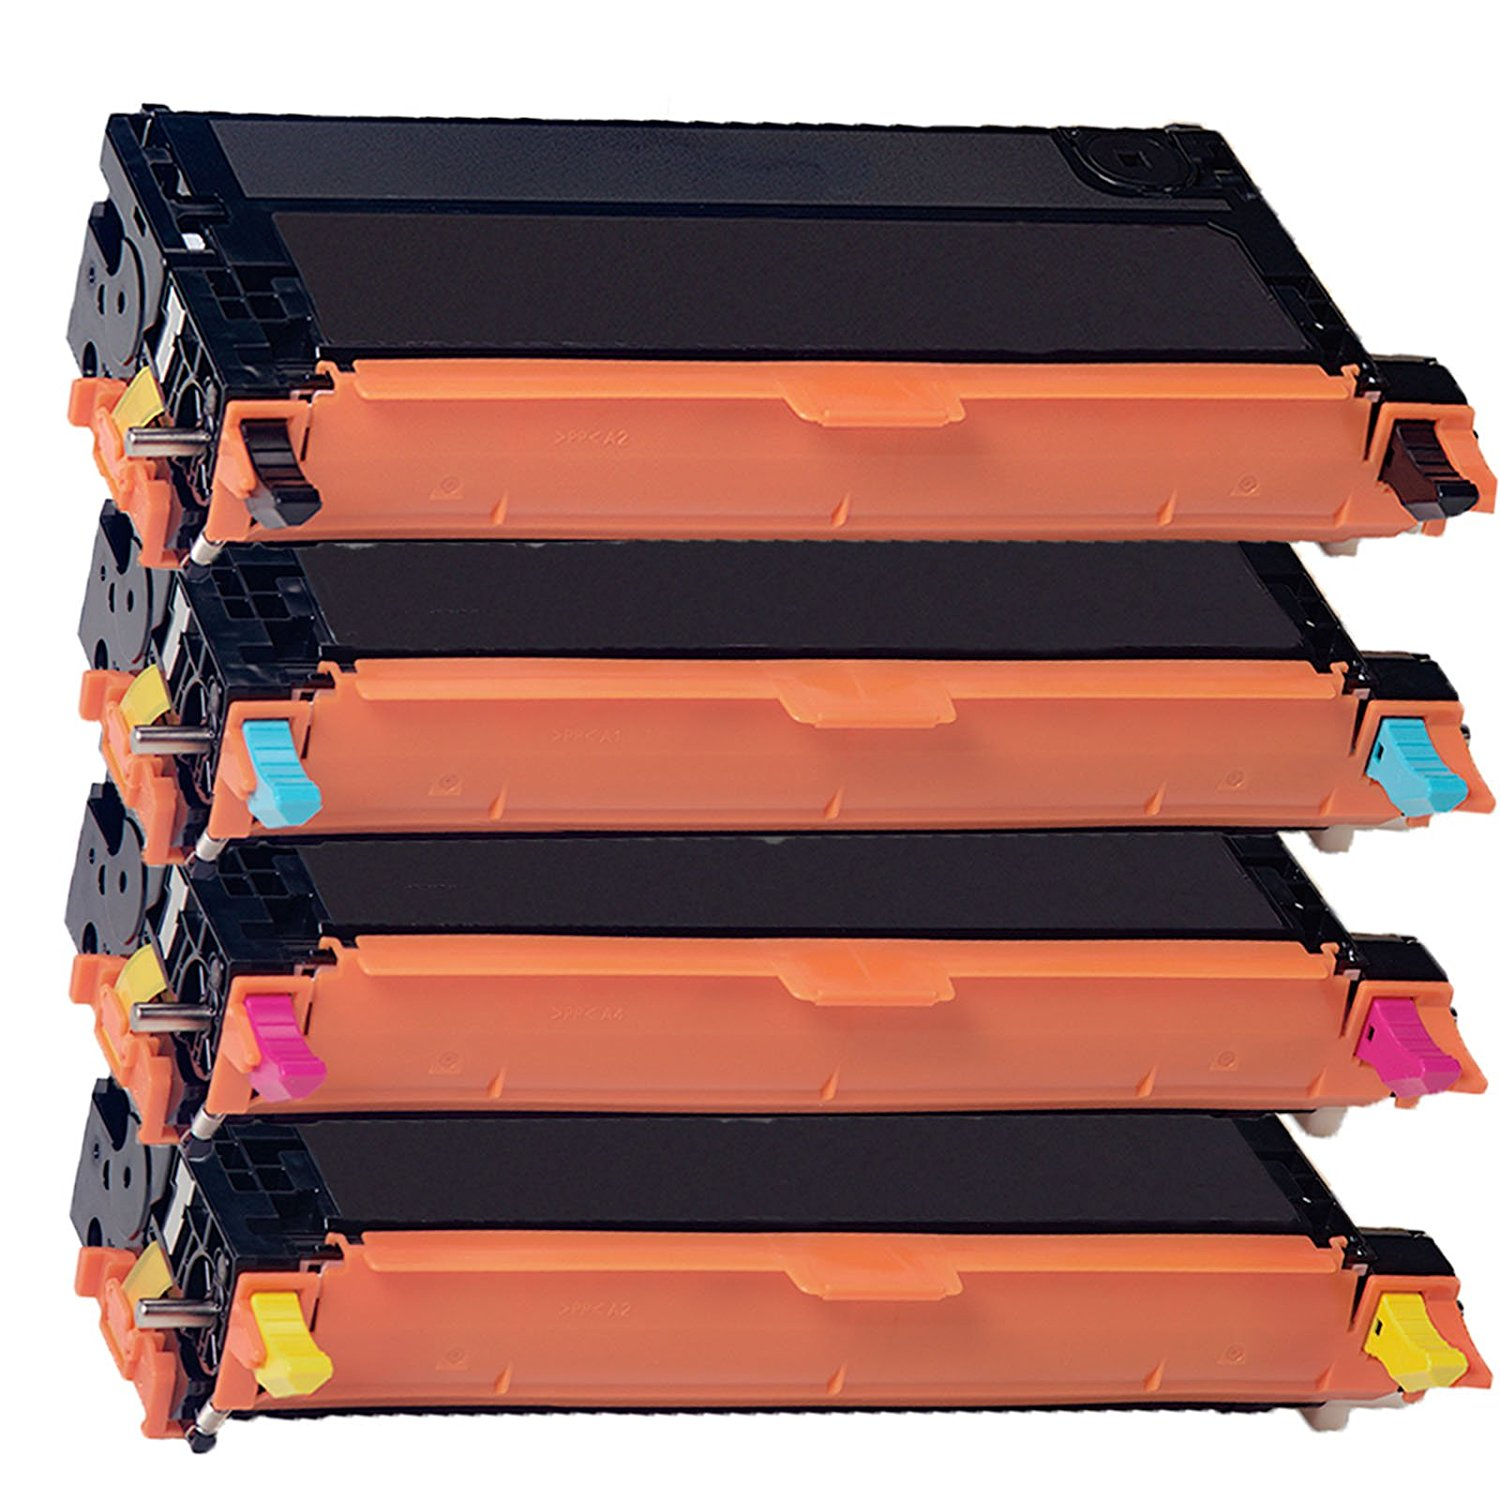 CS Compatible Toner Cartridge Replacement for Xerox 6180 113R00726 Black Phaser 6180 6180n 6180dn 6180MFP 6180MFPN 6180MFPD Black 8 000 Page Yield